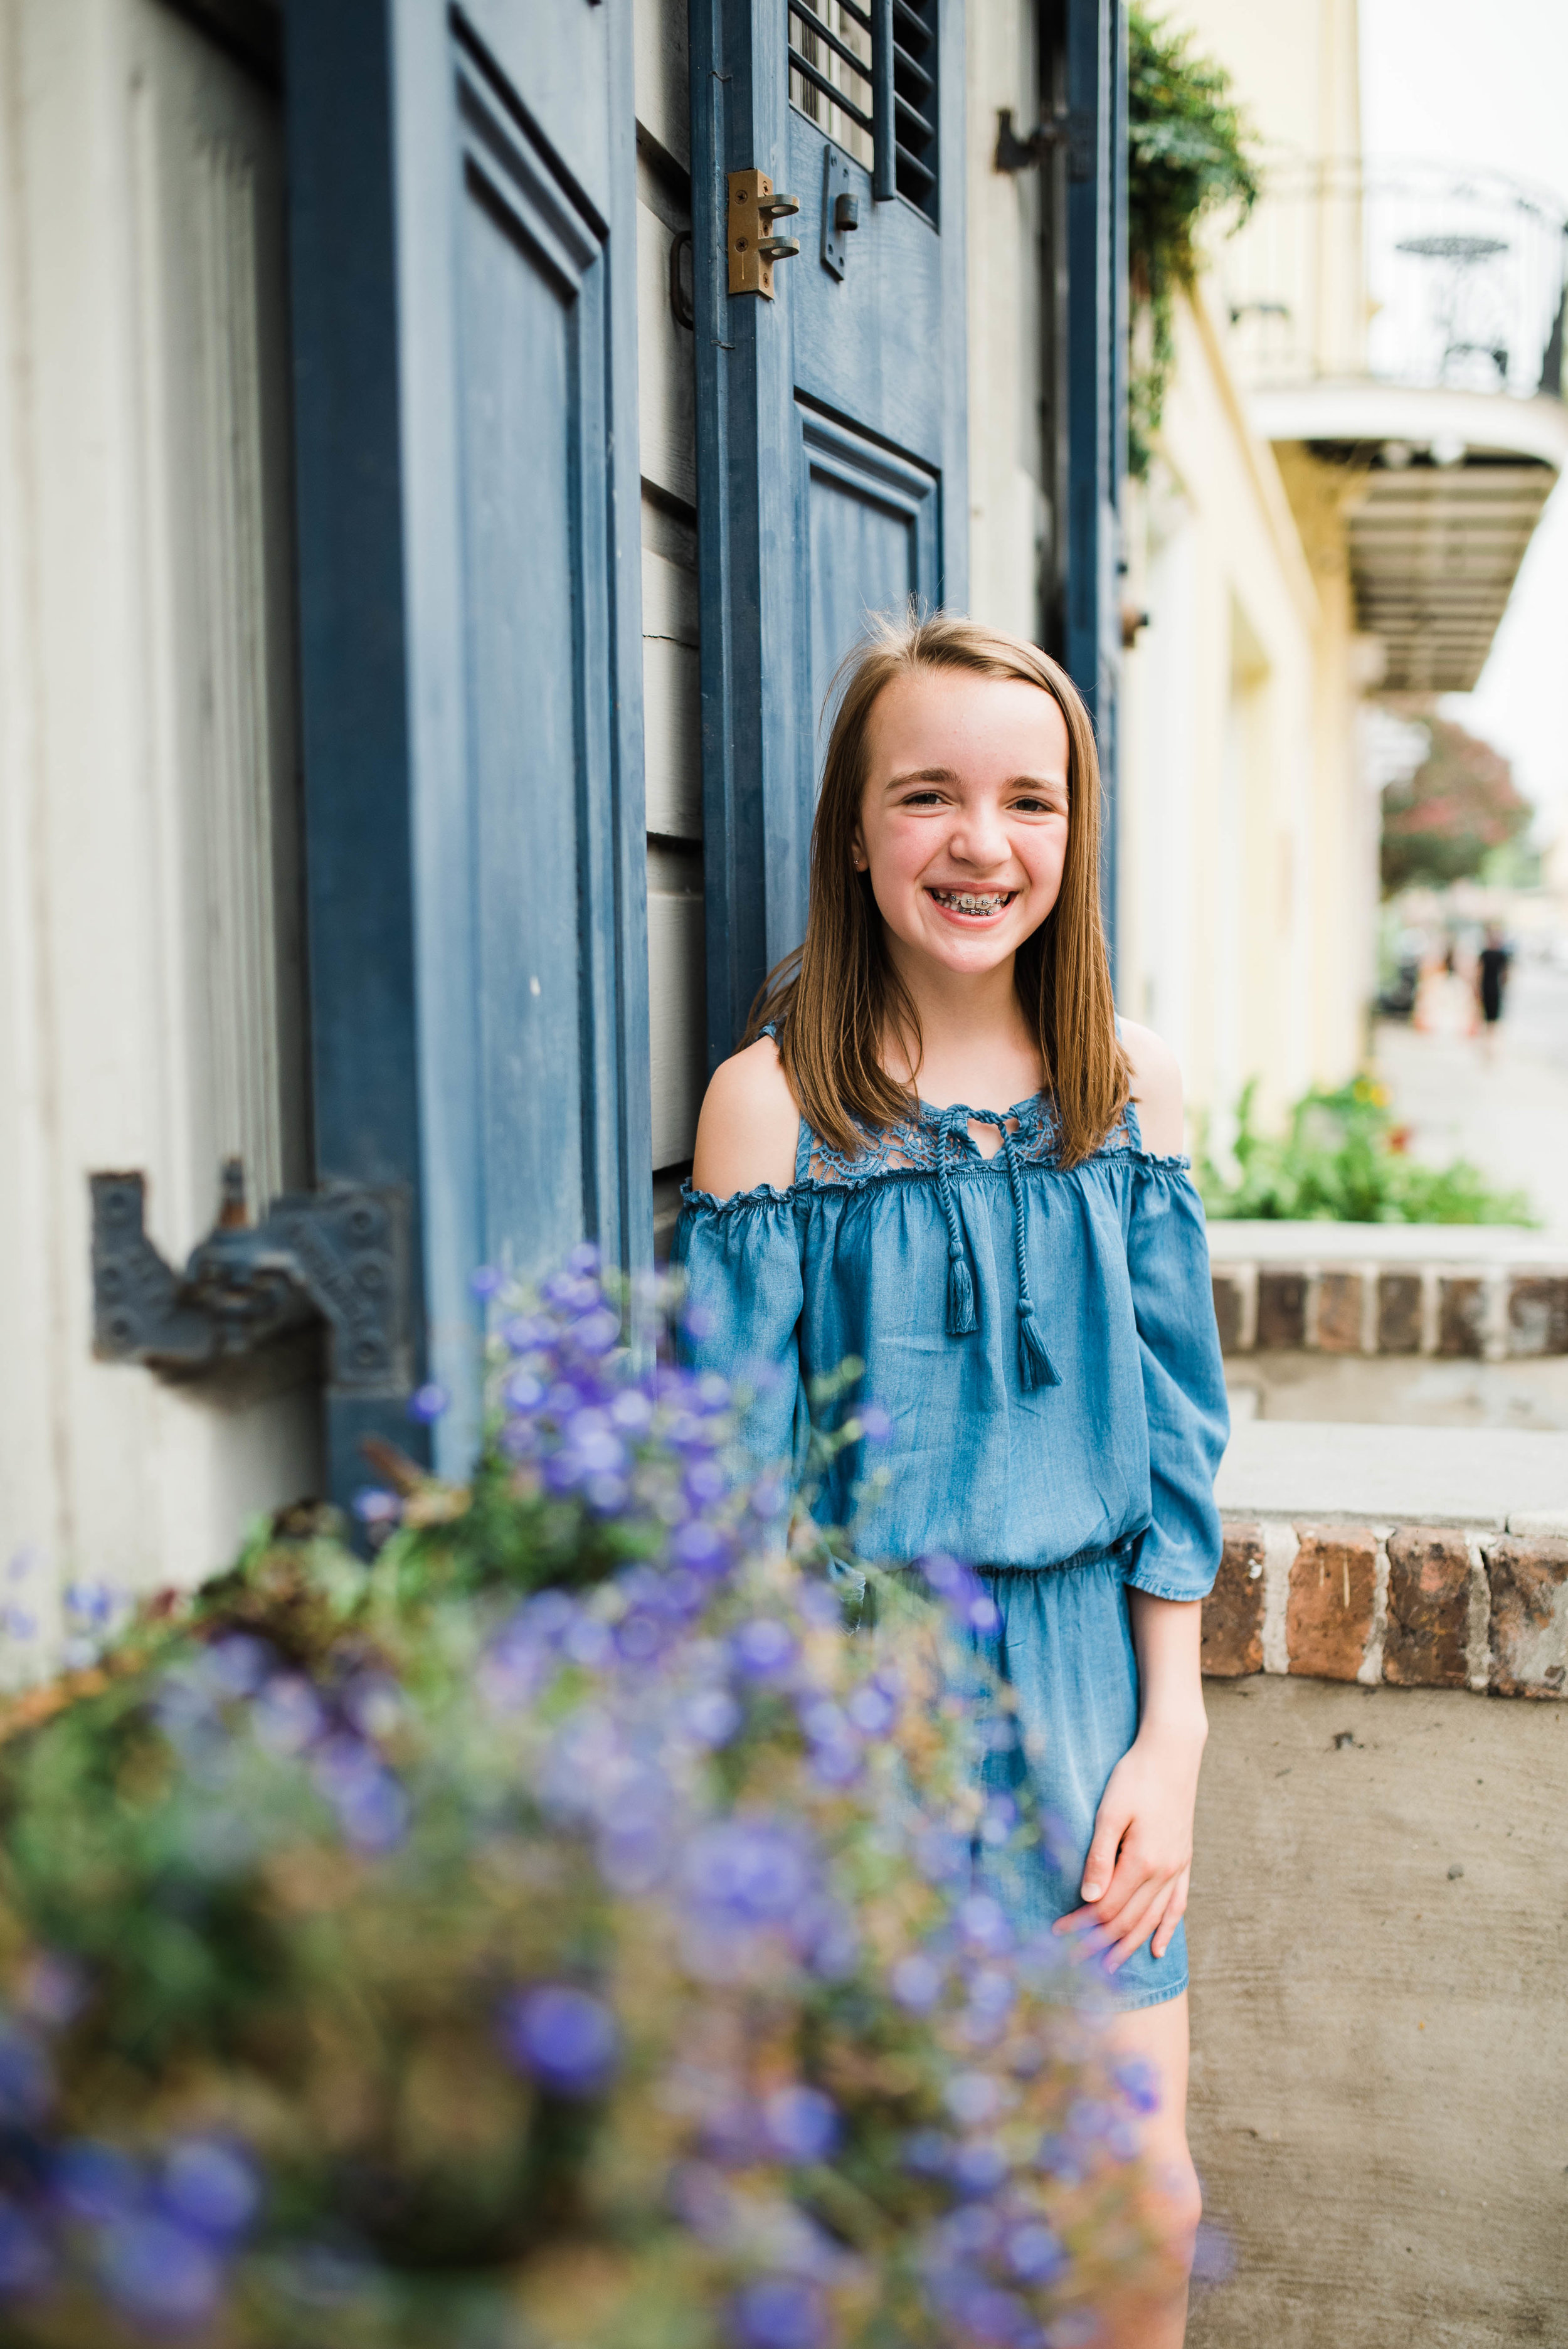 Conrad-Family-Photos-New-Orleans-French-Quarter_Gabby Chapin Photography_0089.jpg